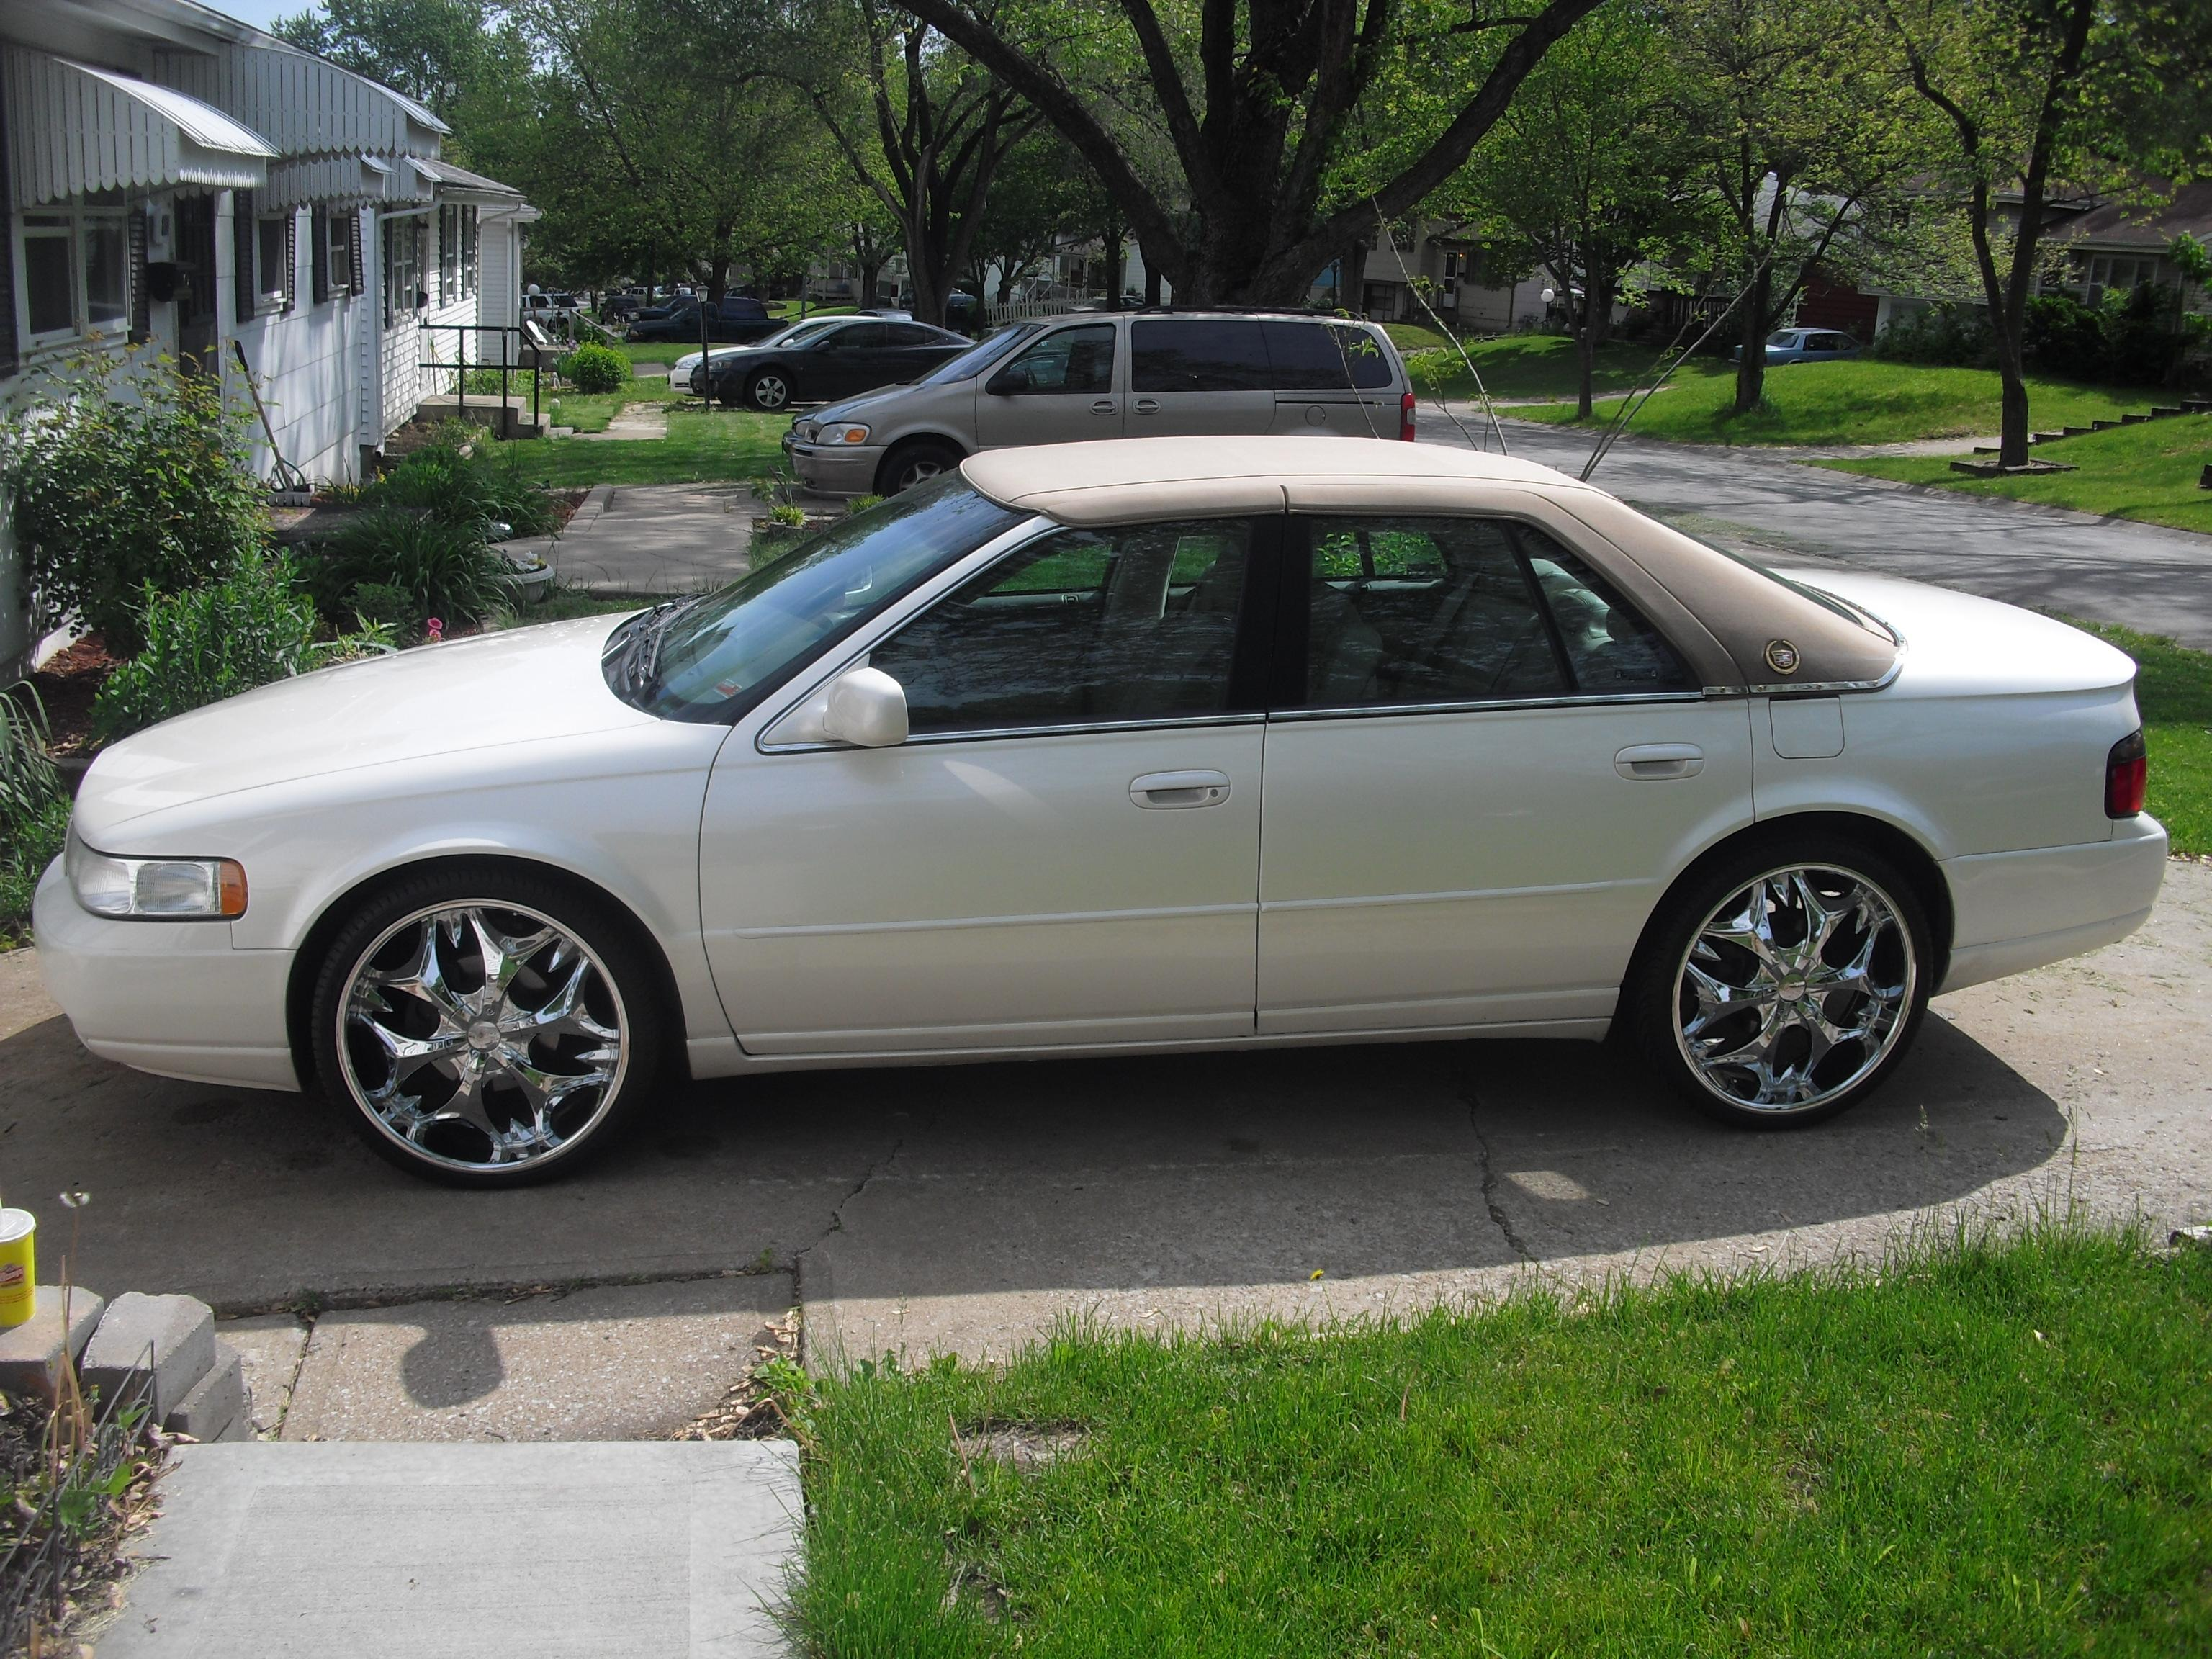 trombino816 2002 cadillac sevillesls sedan 4d specs photos modification inf. Cars Review. Best American Auto & Cars Review